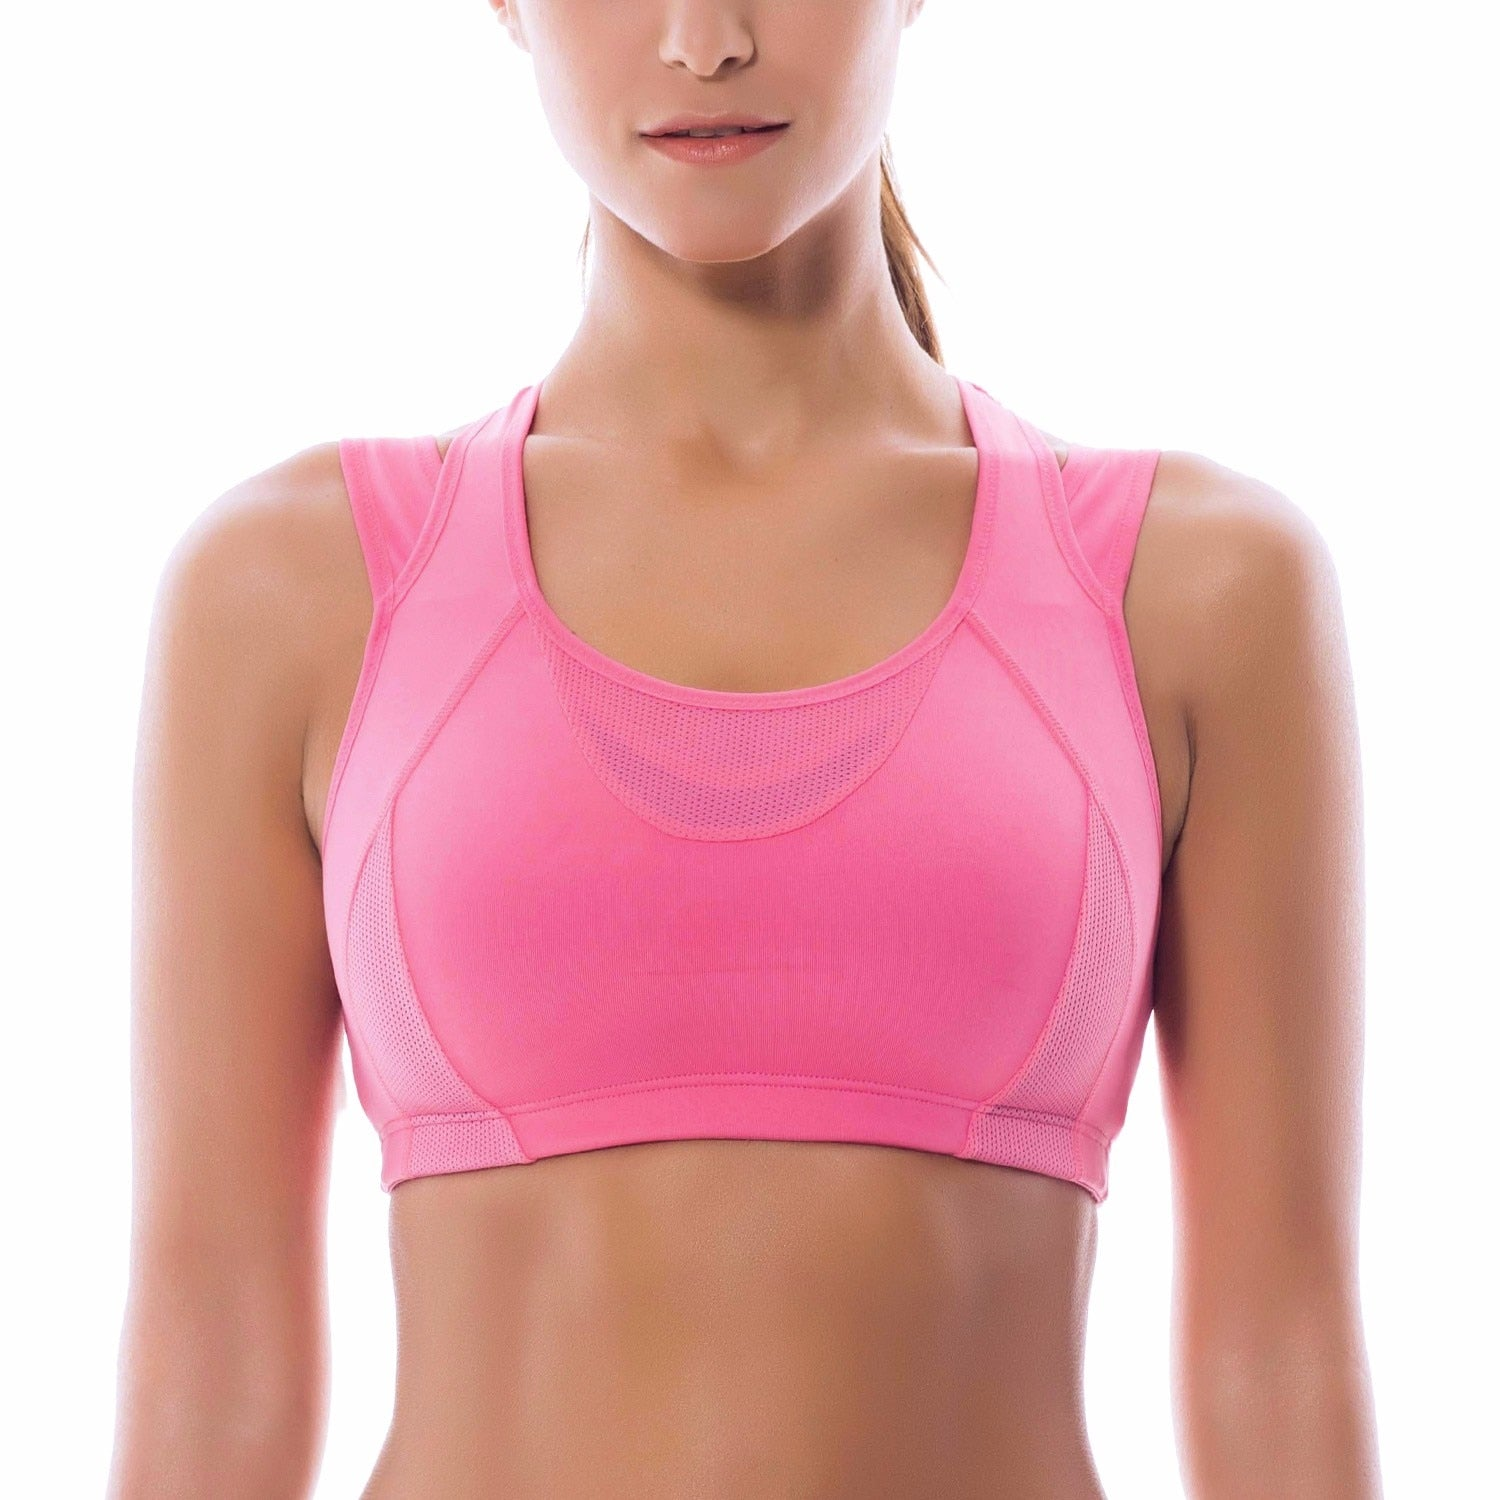 Women's High Impact Support  Bra. - BHsportswear.com